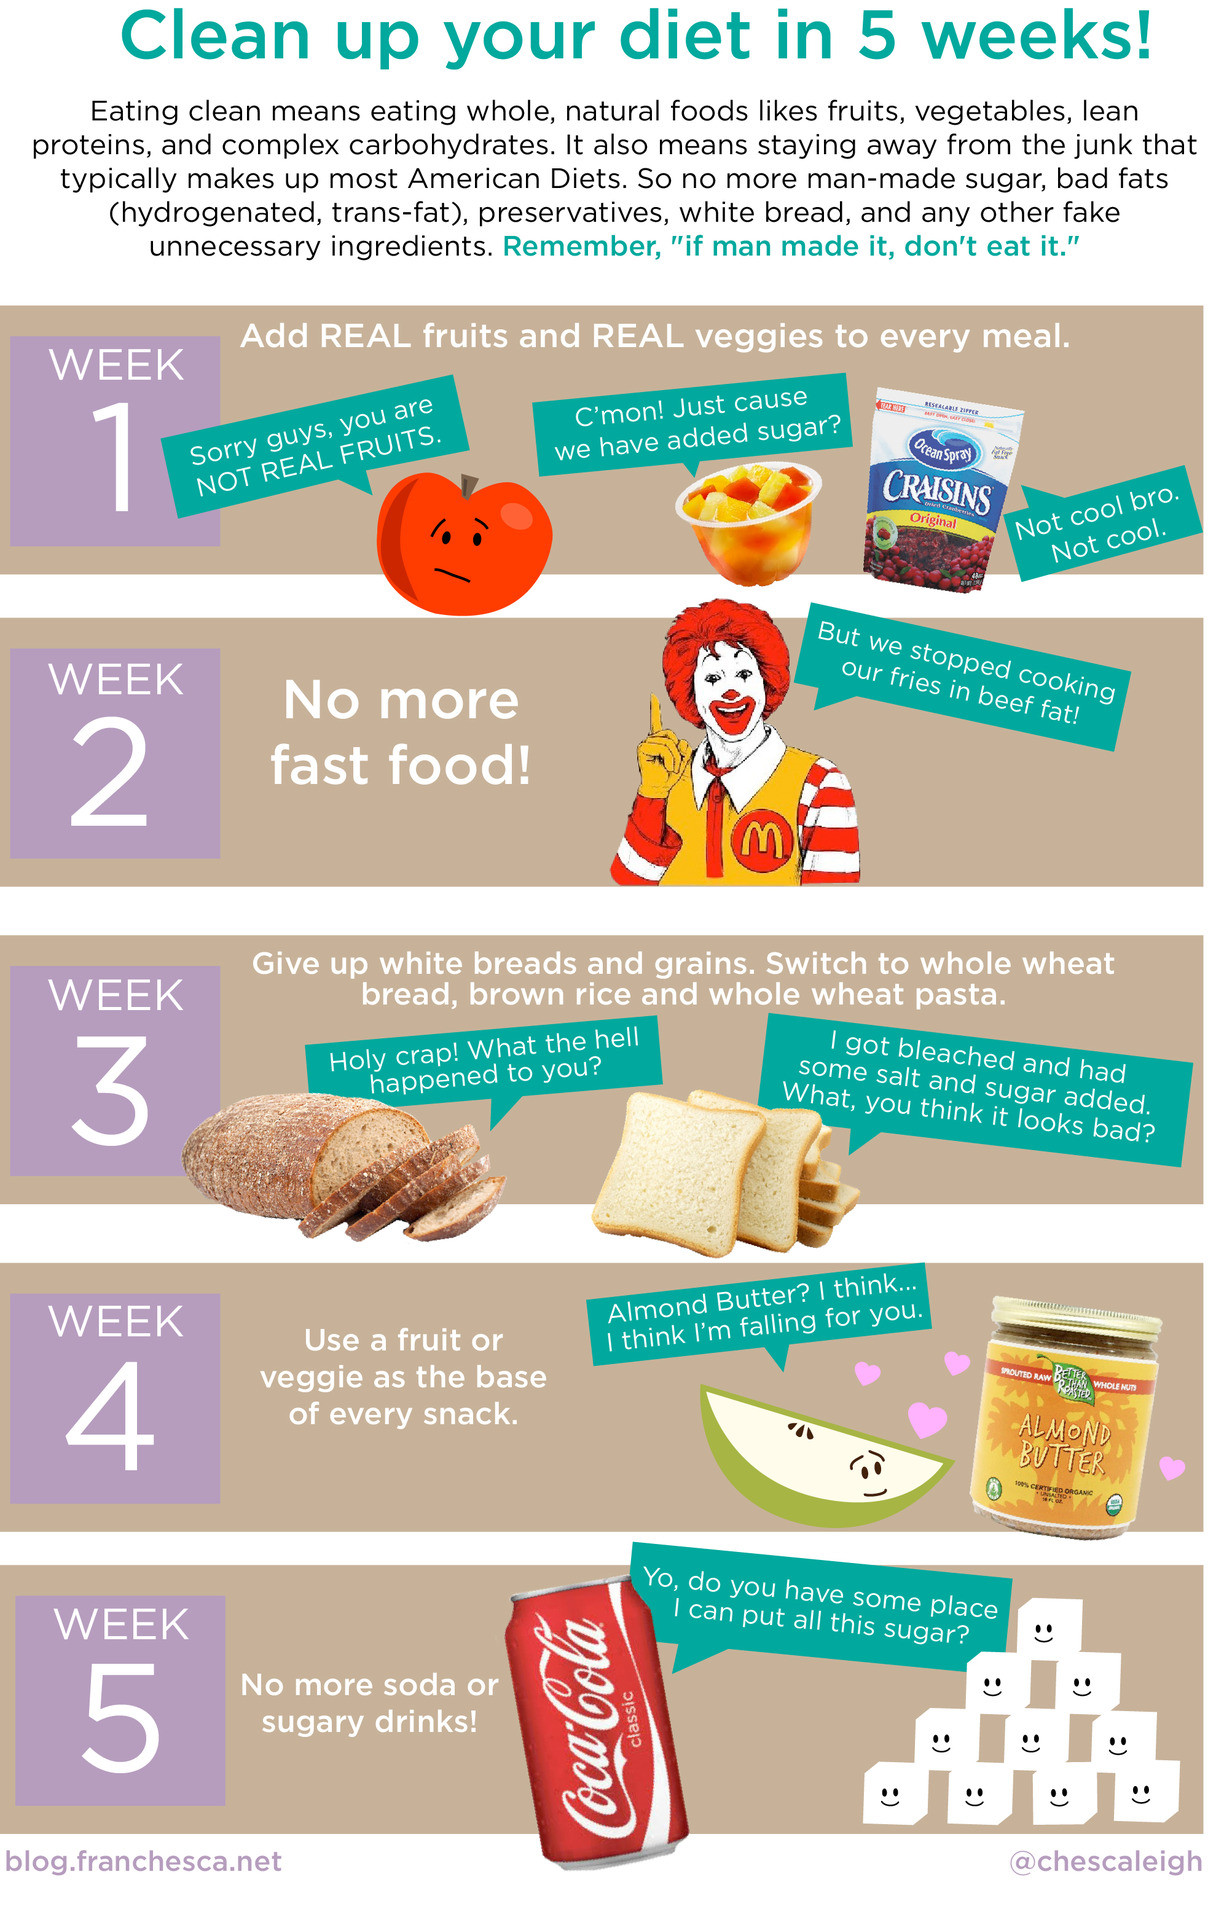 cleandietinfographic